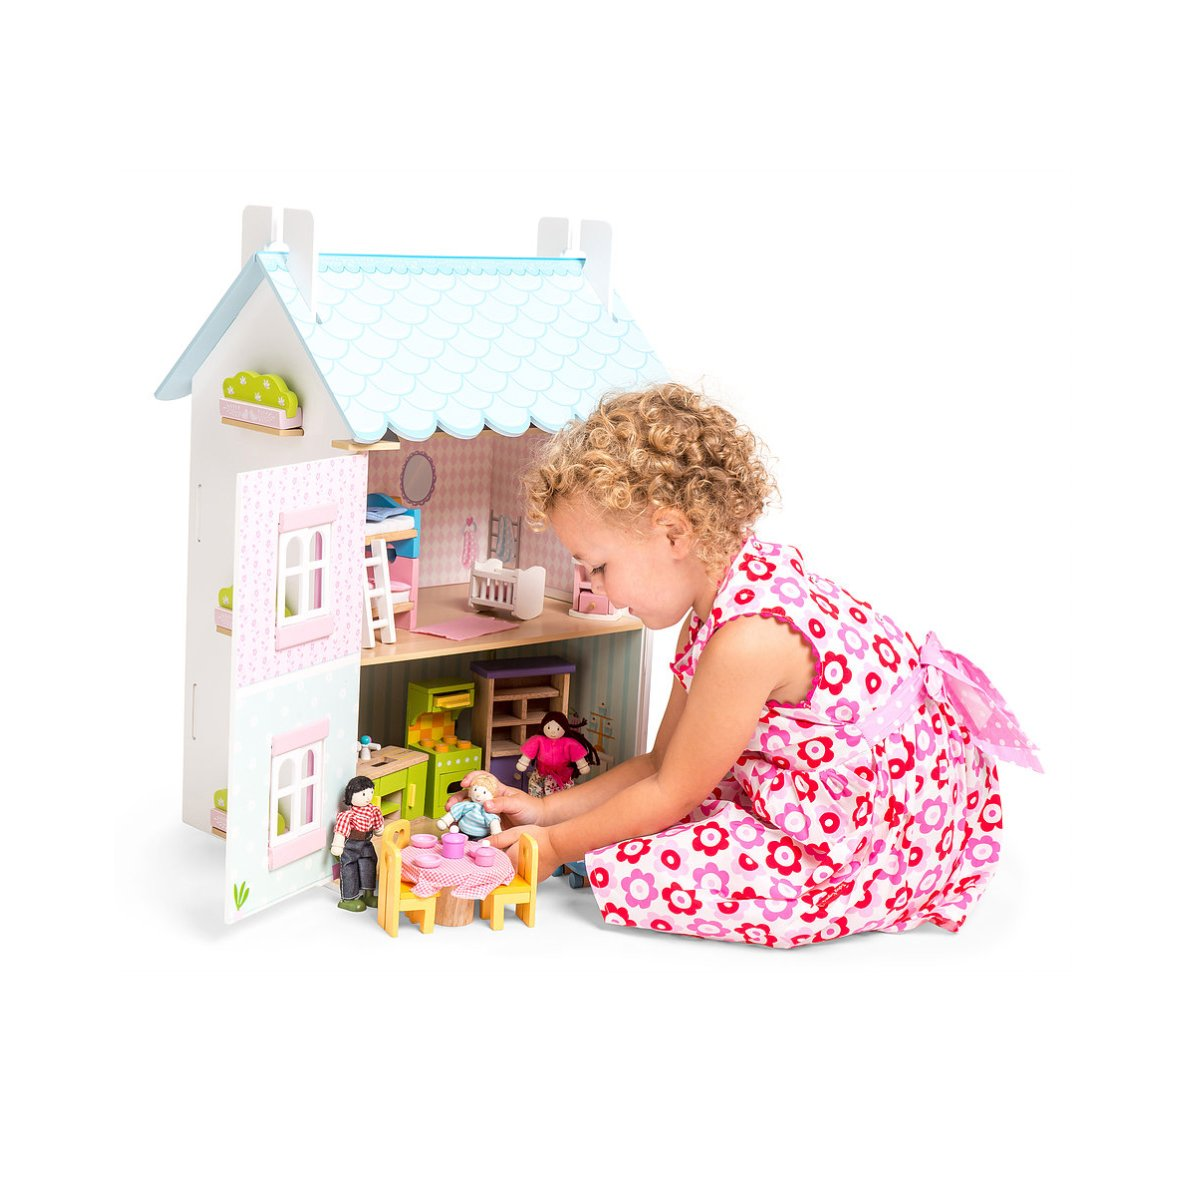 Le Toy Van Blue Bird Cottage Le Petit Bouton Dollshouses at Little Earth Nest Eco Shop